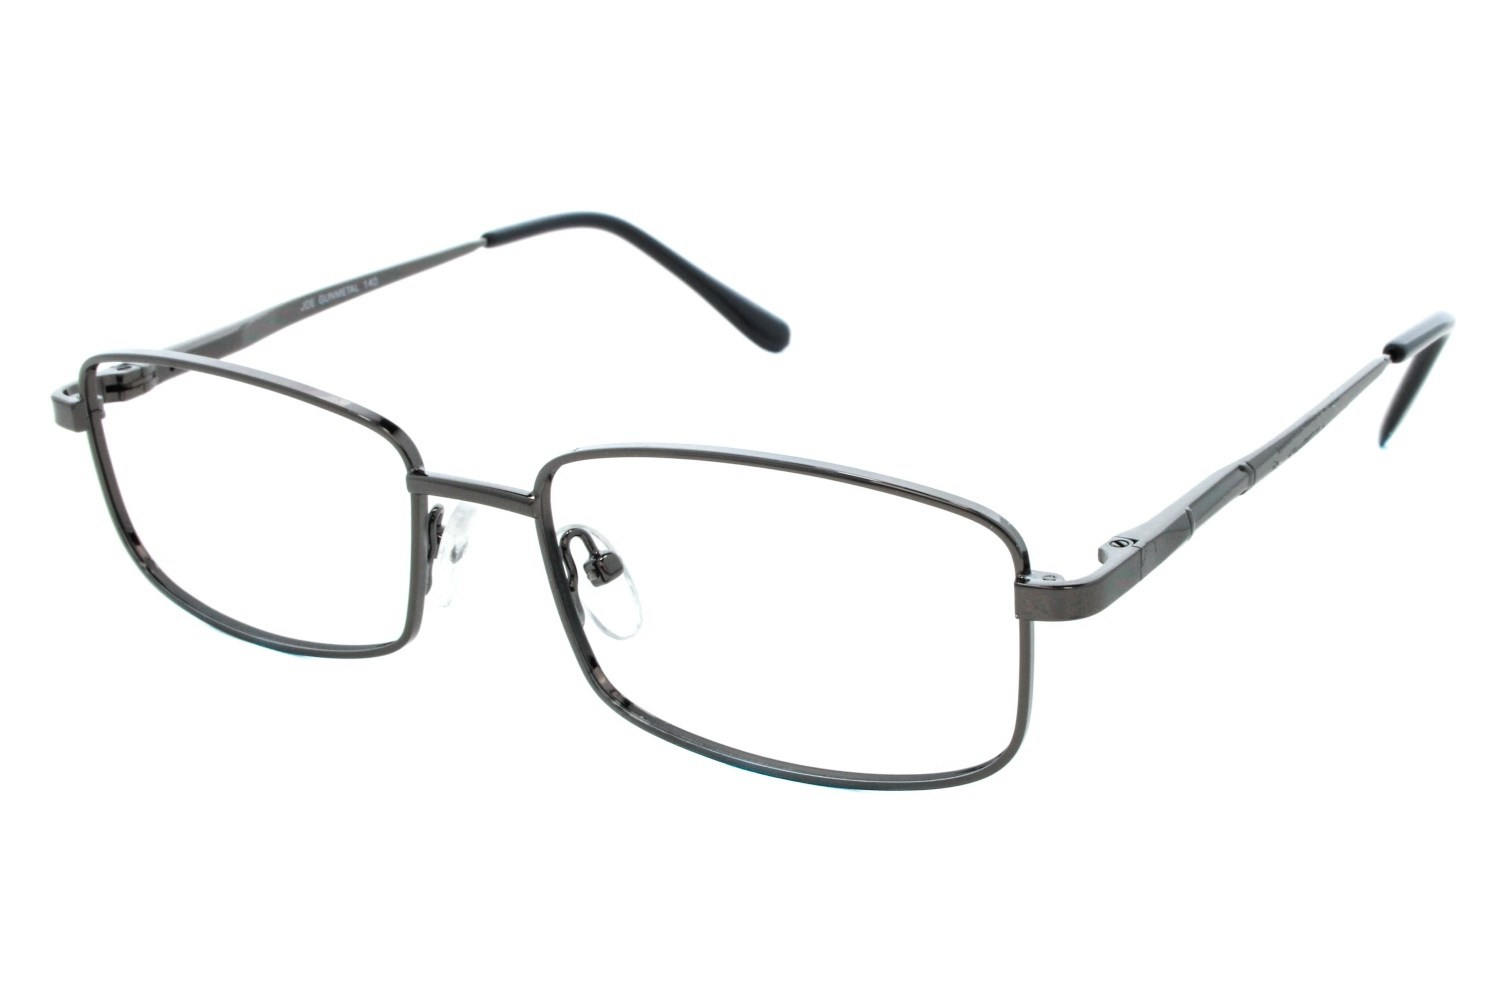 Heartland Joe Prescription Eyeglasses Frames